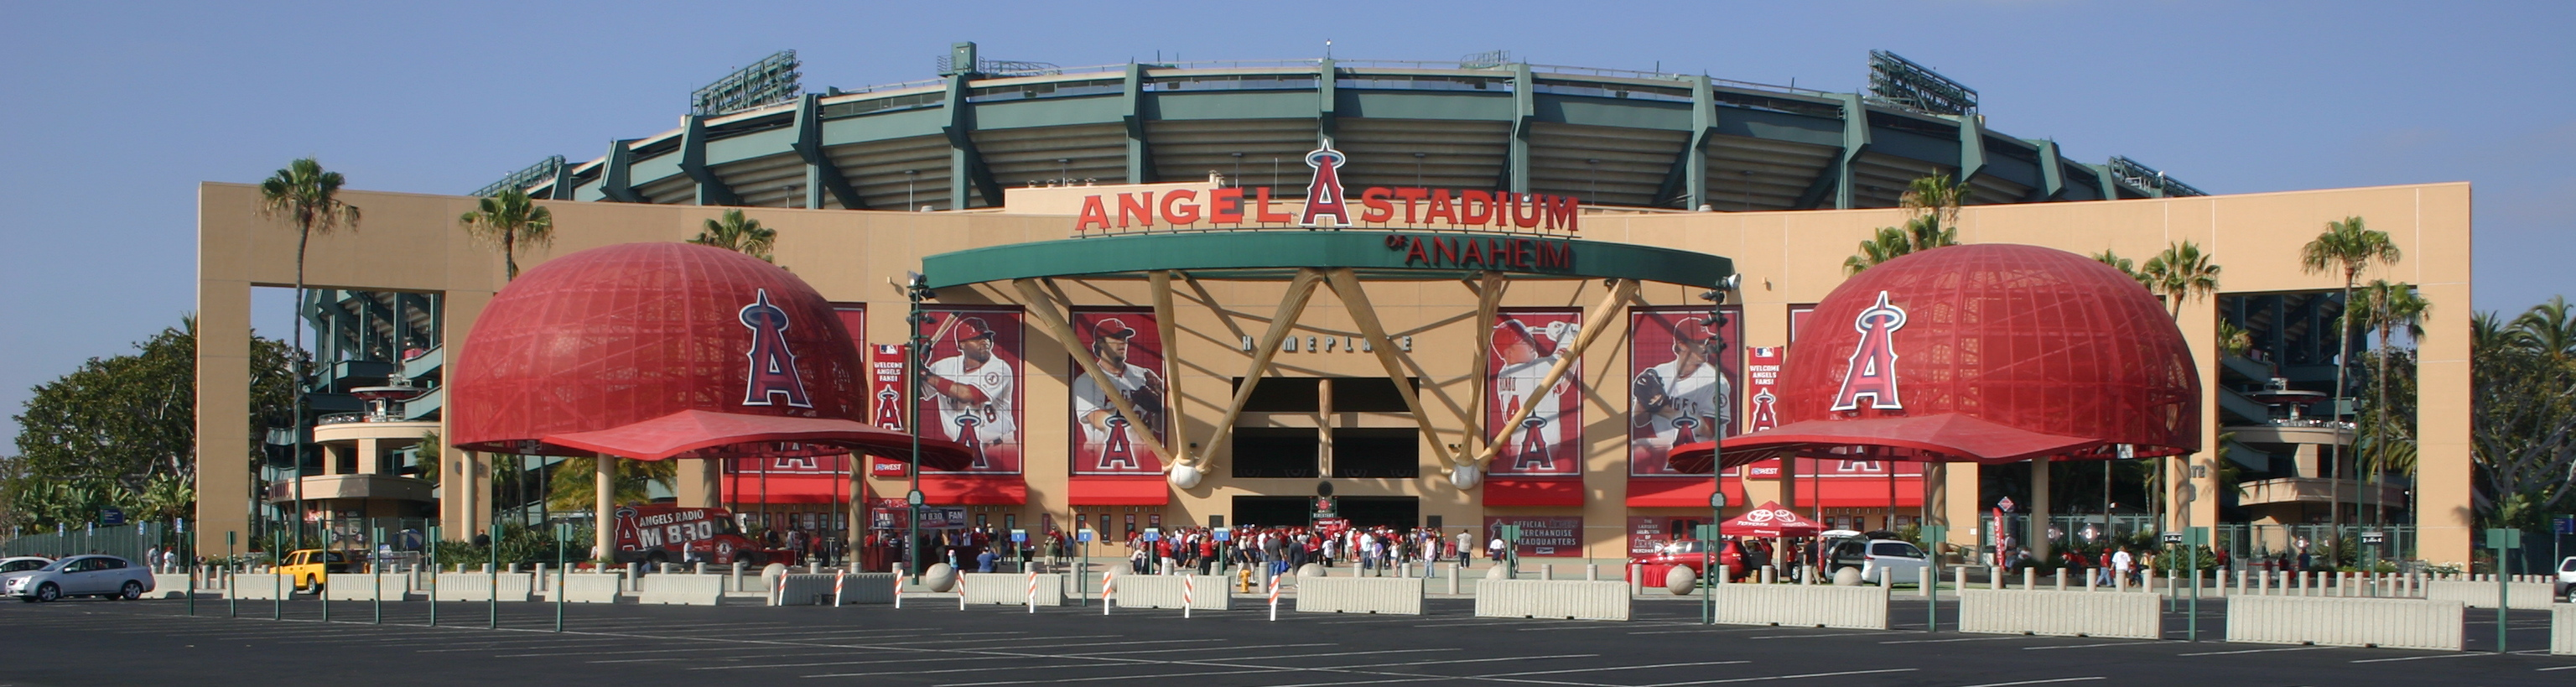 Angel Stadium,Anaheim,Los Angeles,Baseball trips,group tours